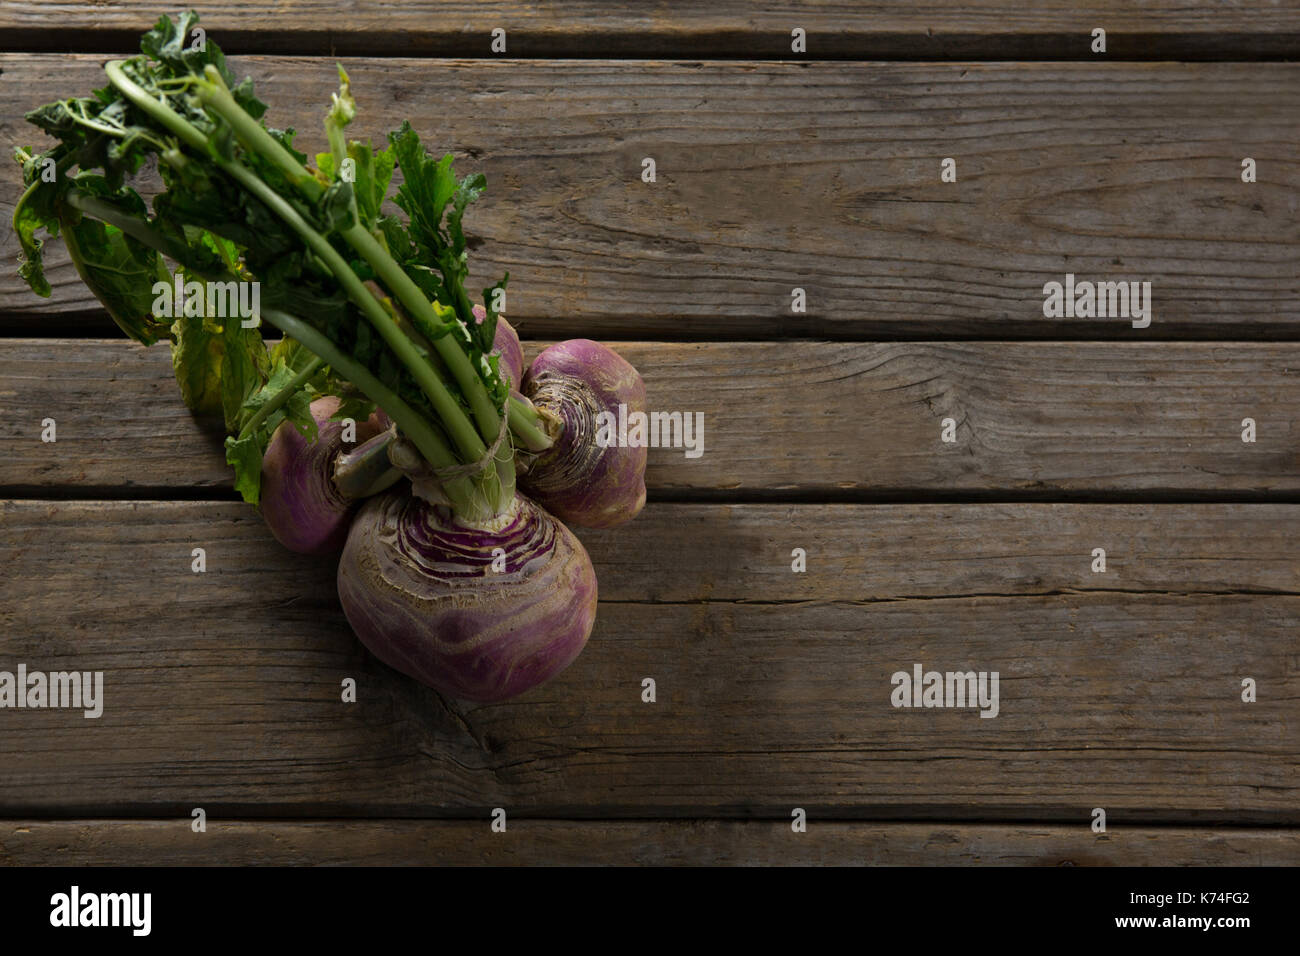 Overhead of beetroot on wooden table - Stock Image